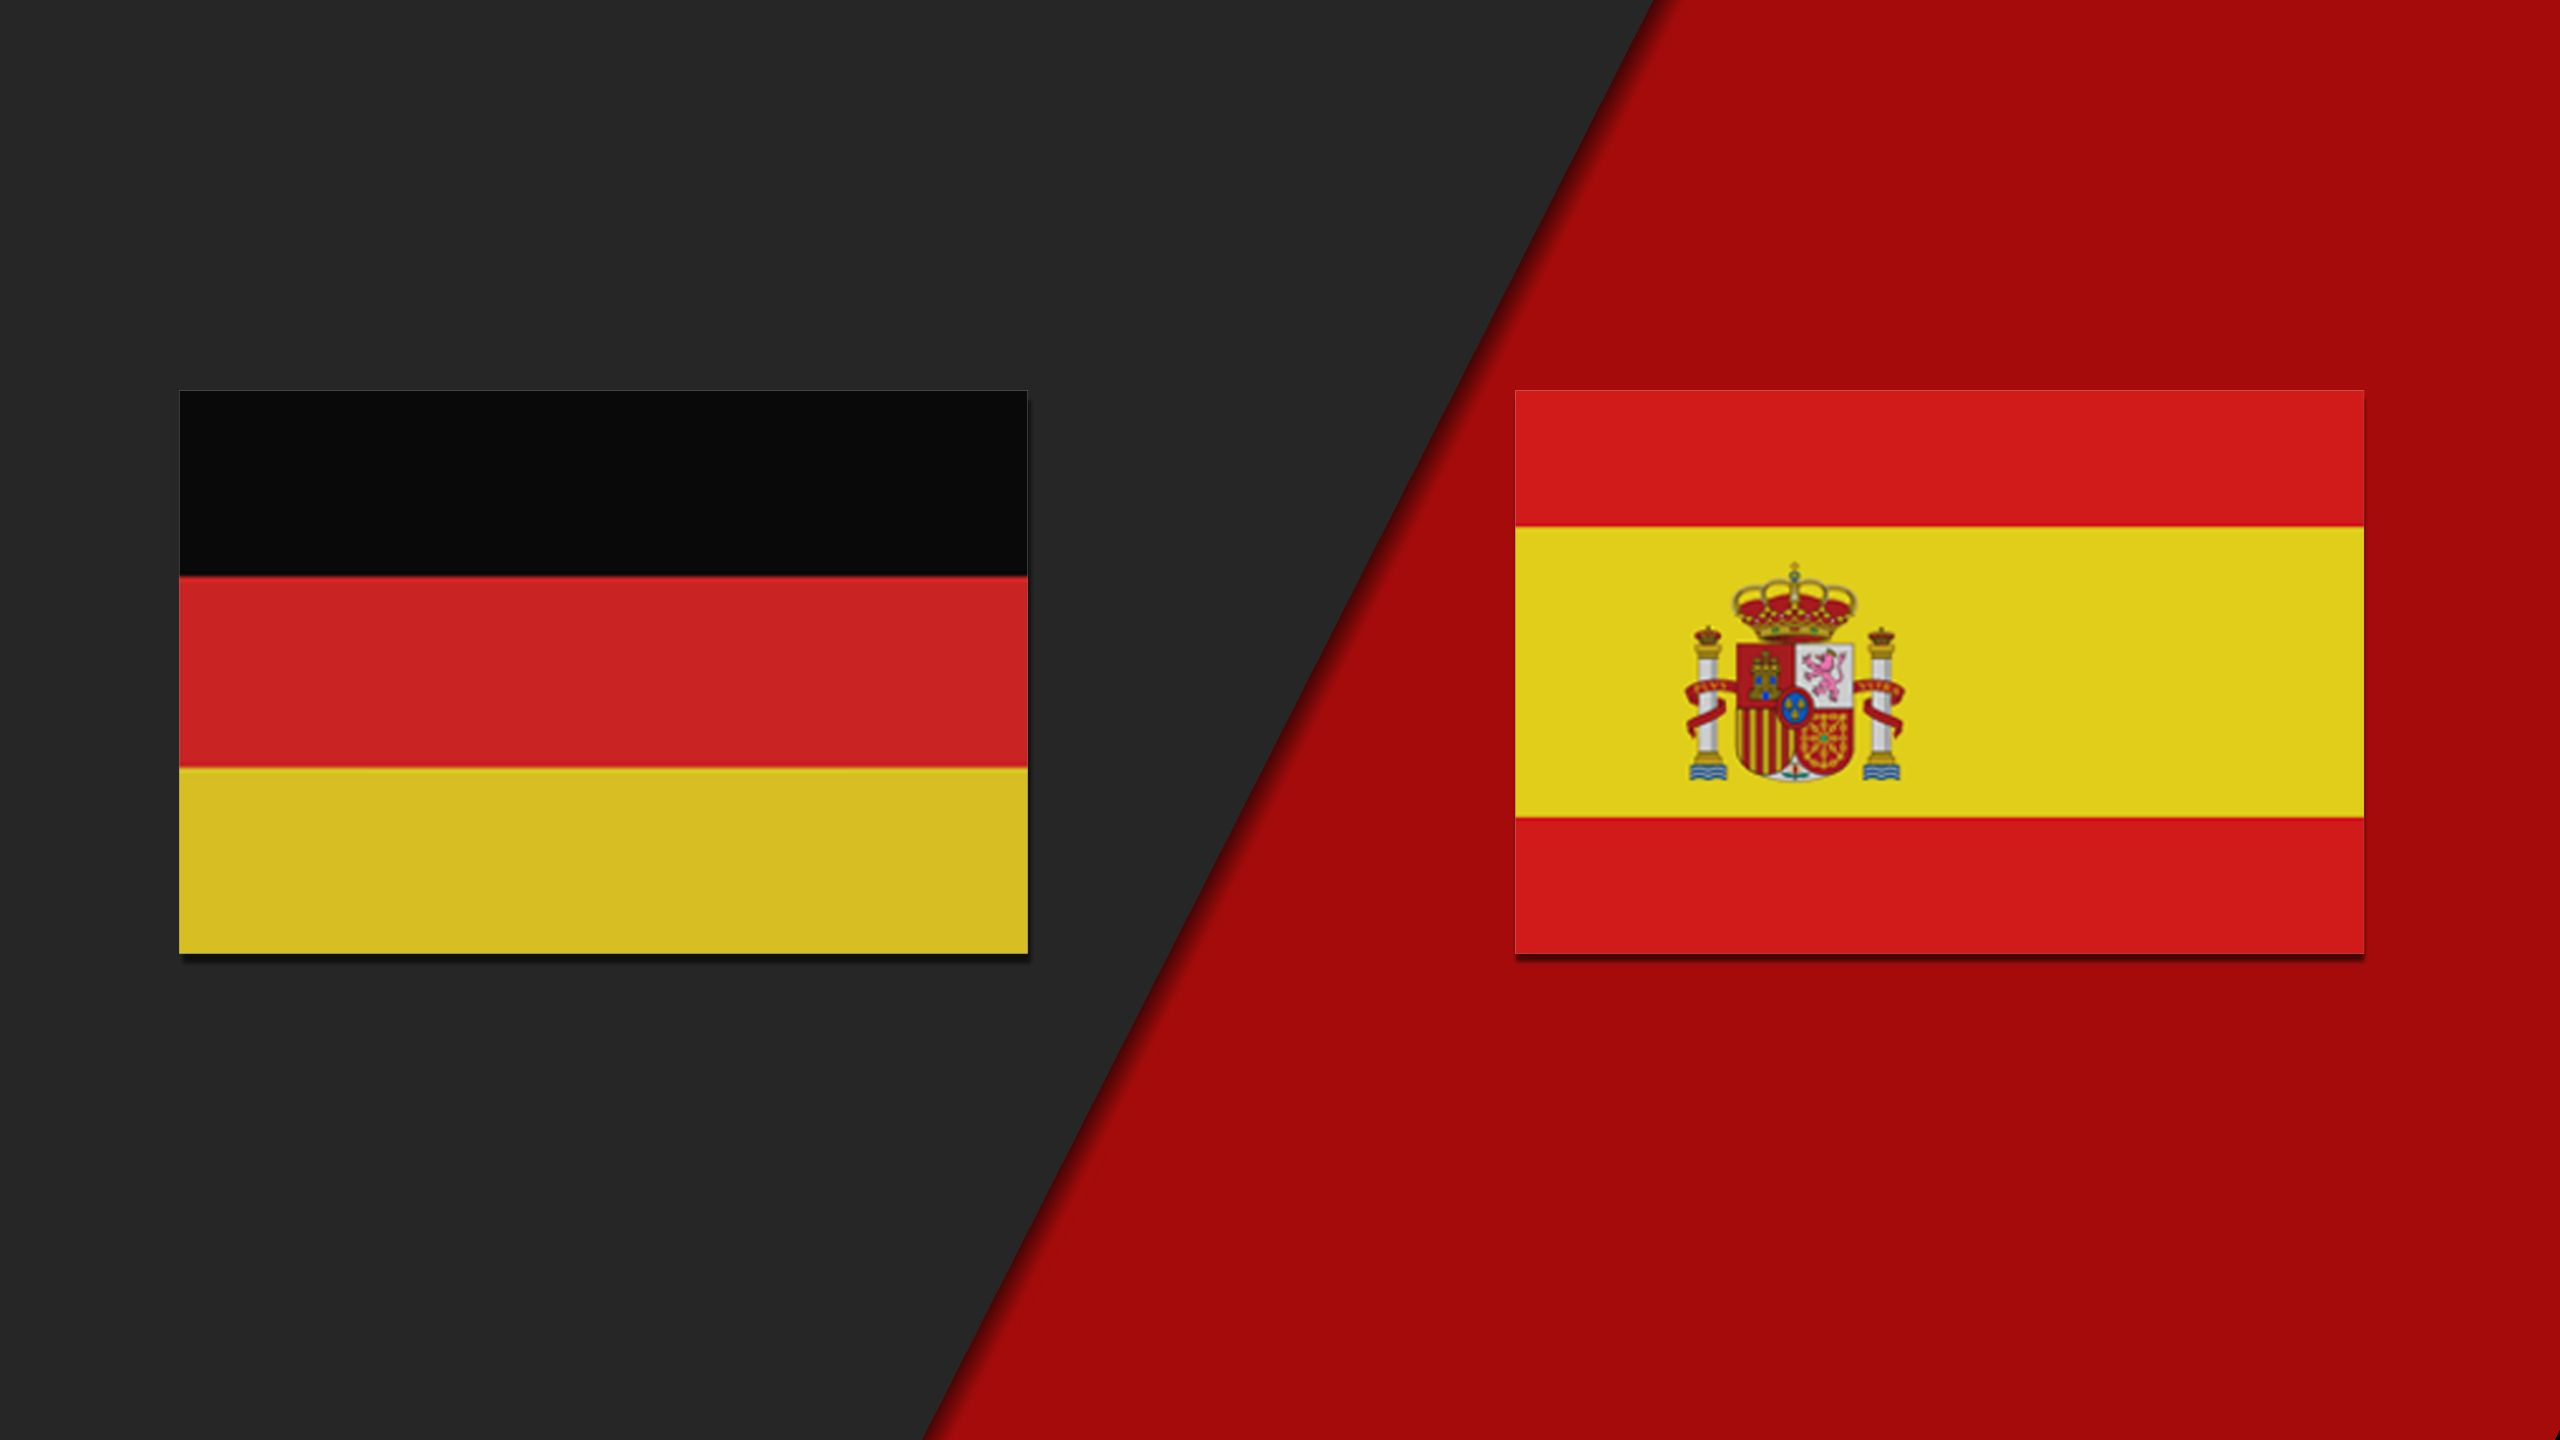 In Spanish - Germany vs. Spain (International Friendly)